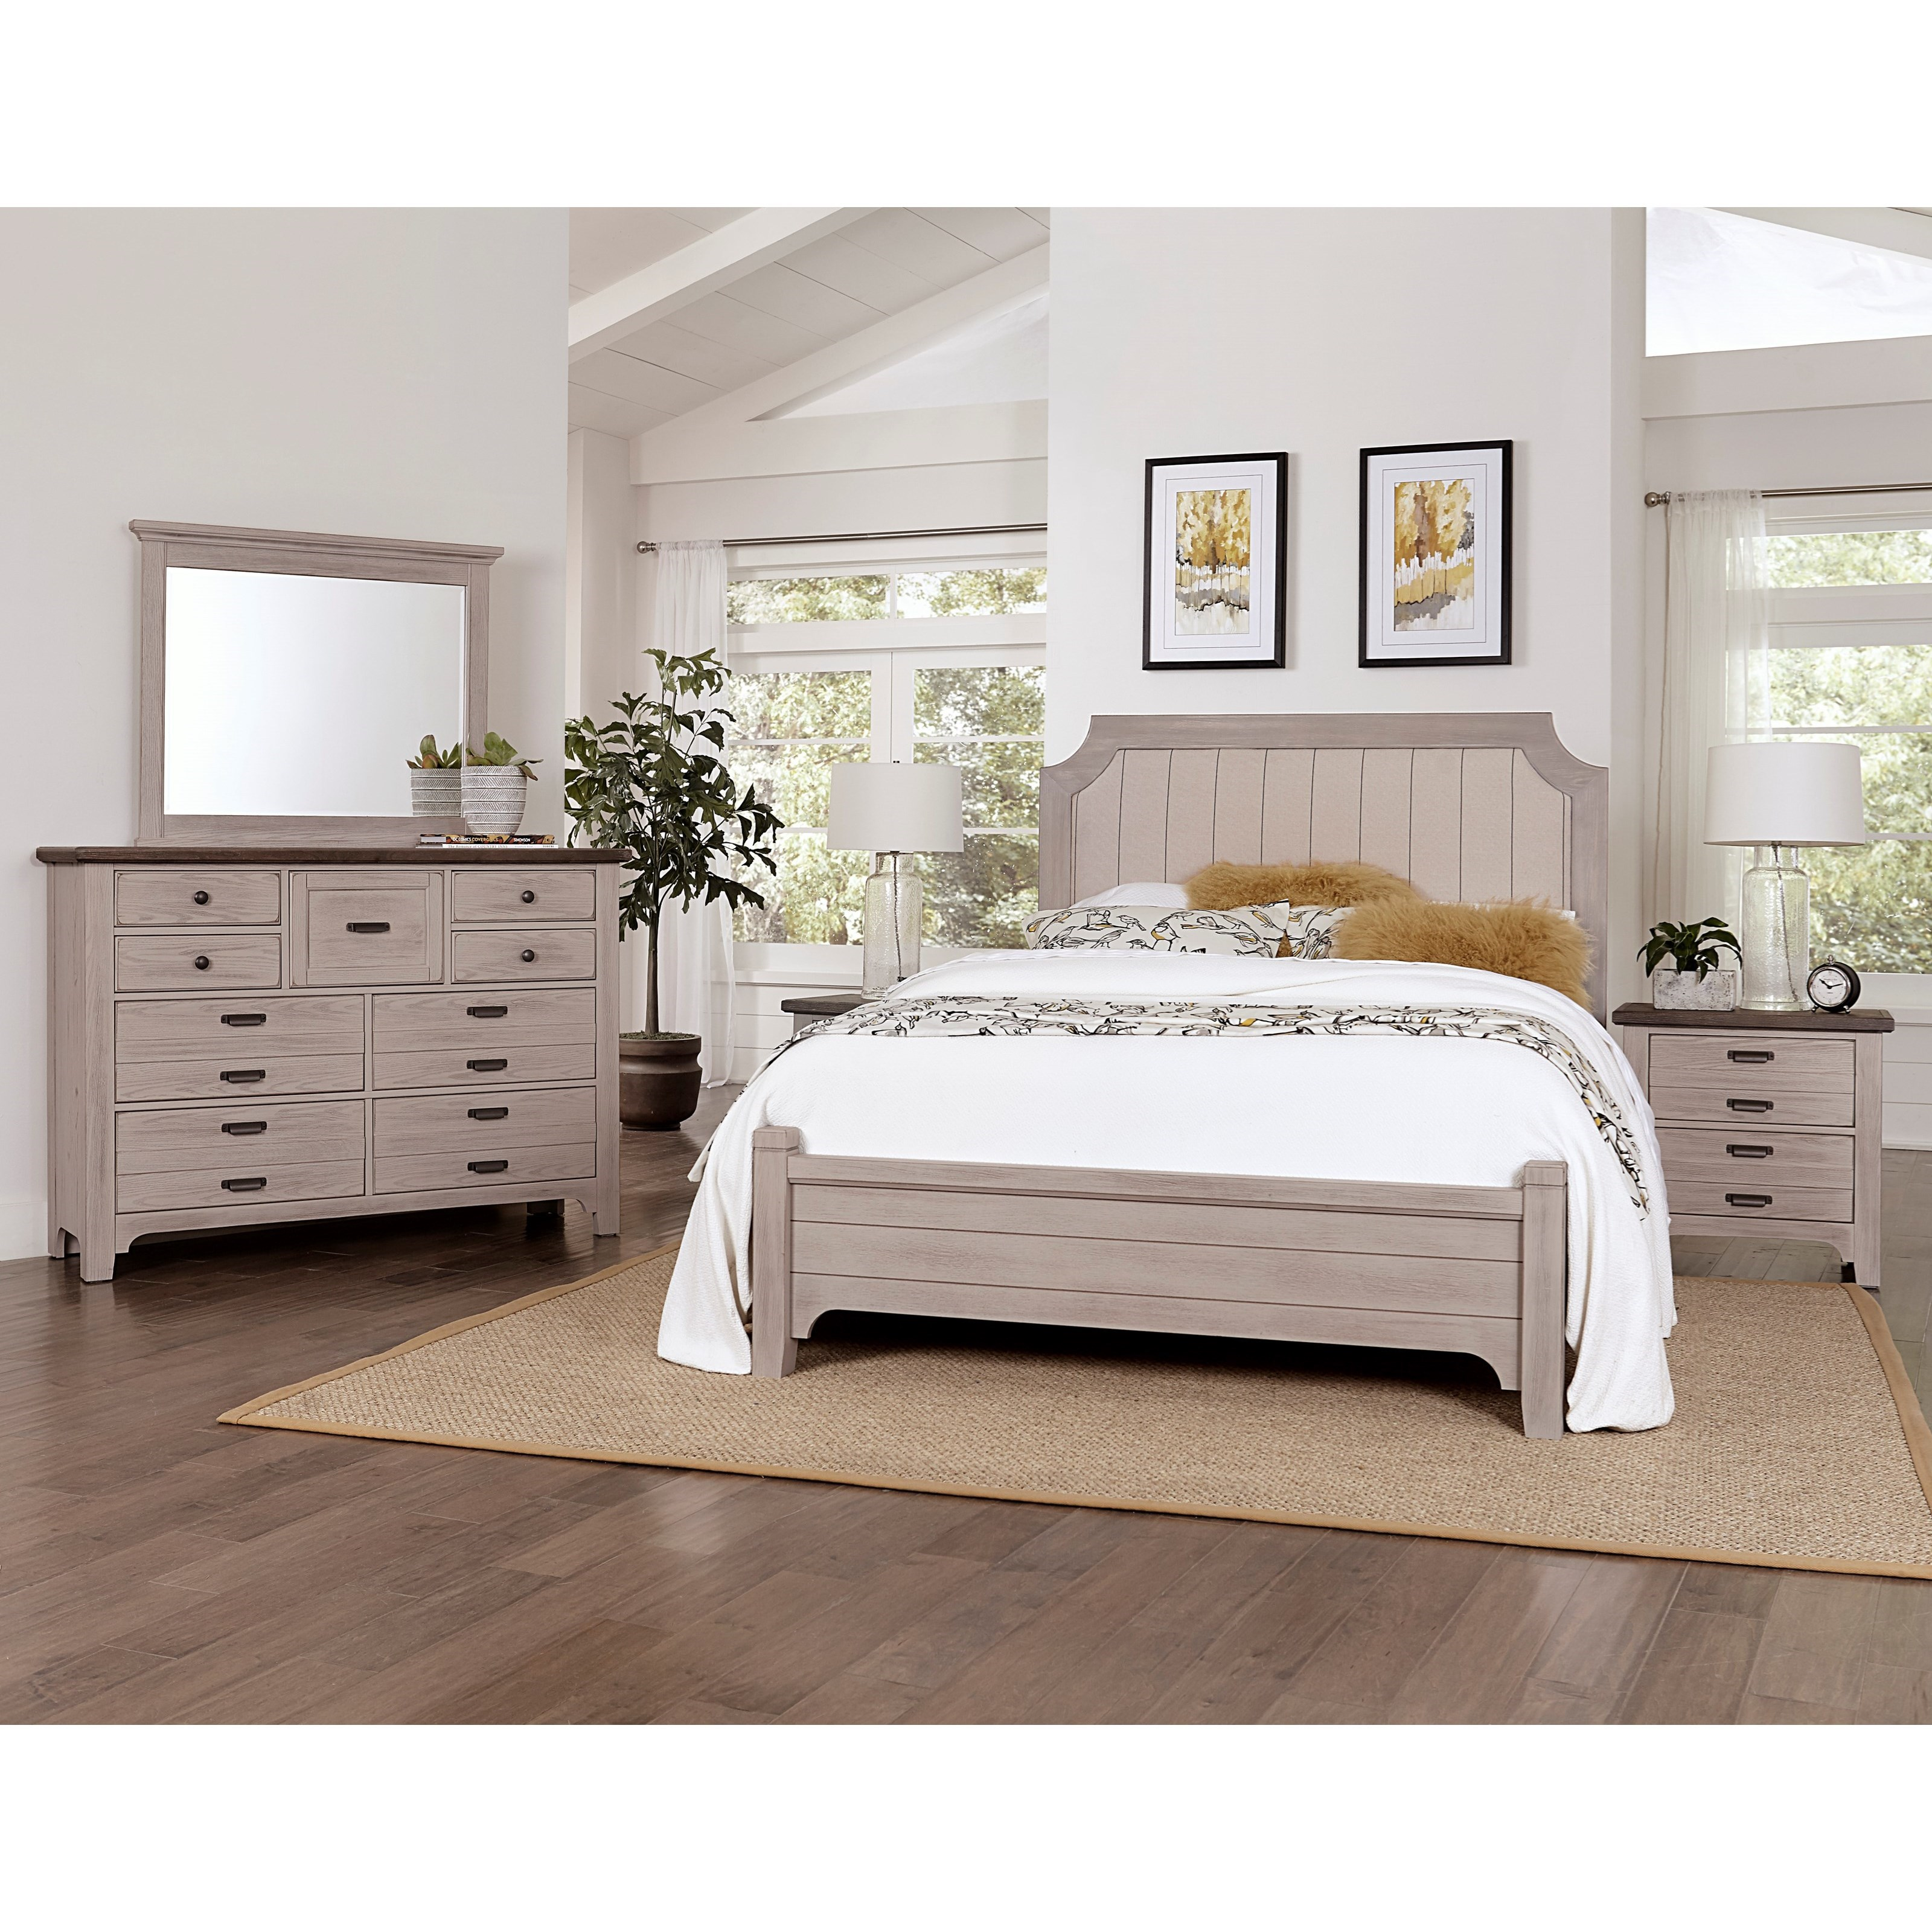 Bungalow King Bedroom Group by Laurel Mercantile Co. at Johnny Janosik